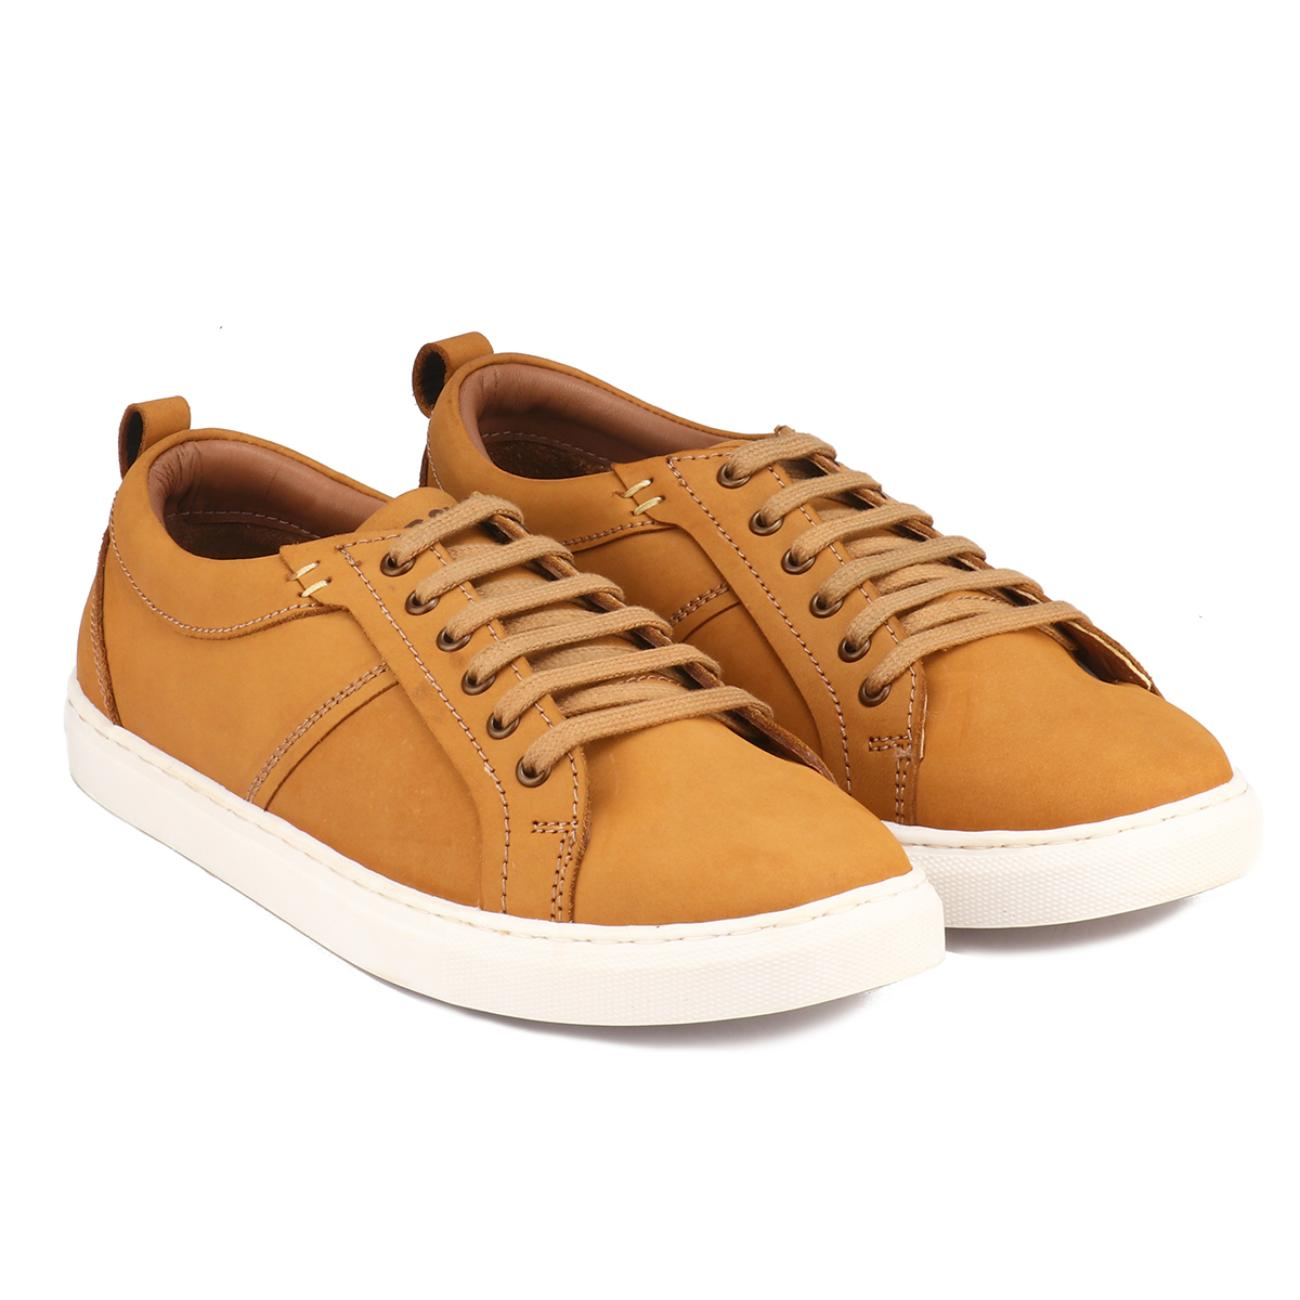 rust casual sneakers rubber sole